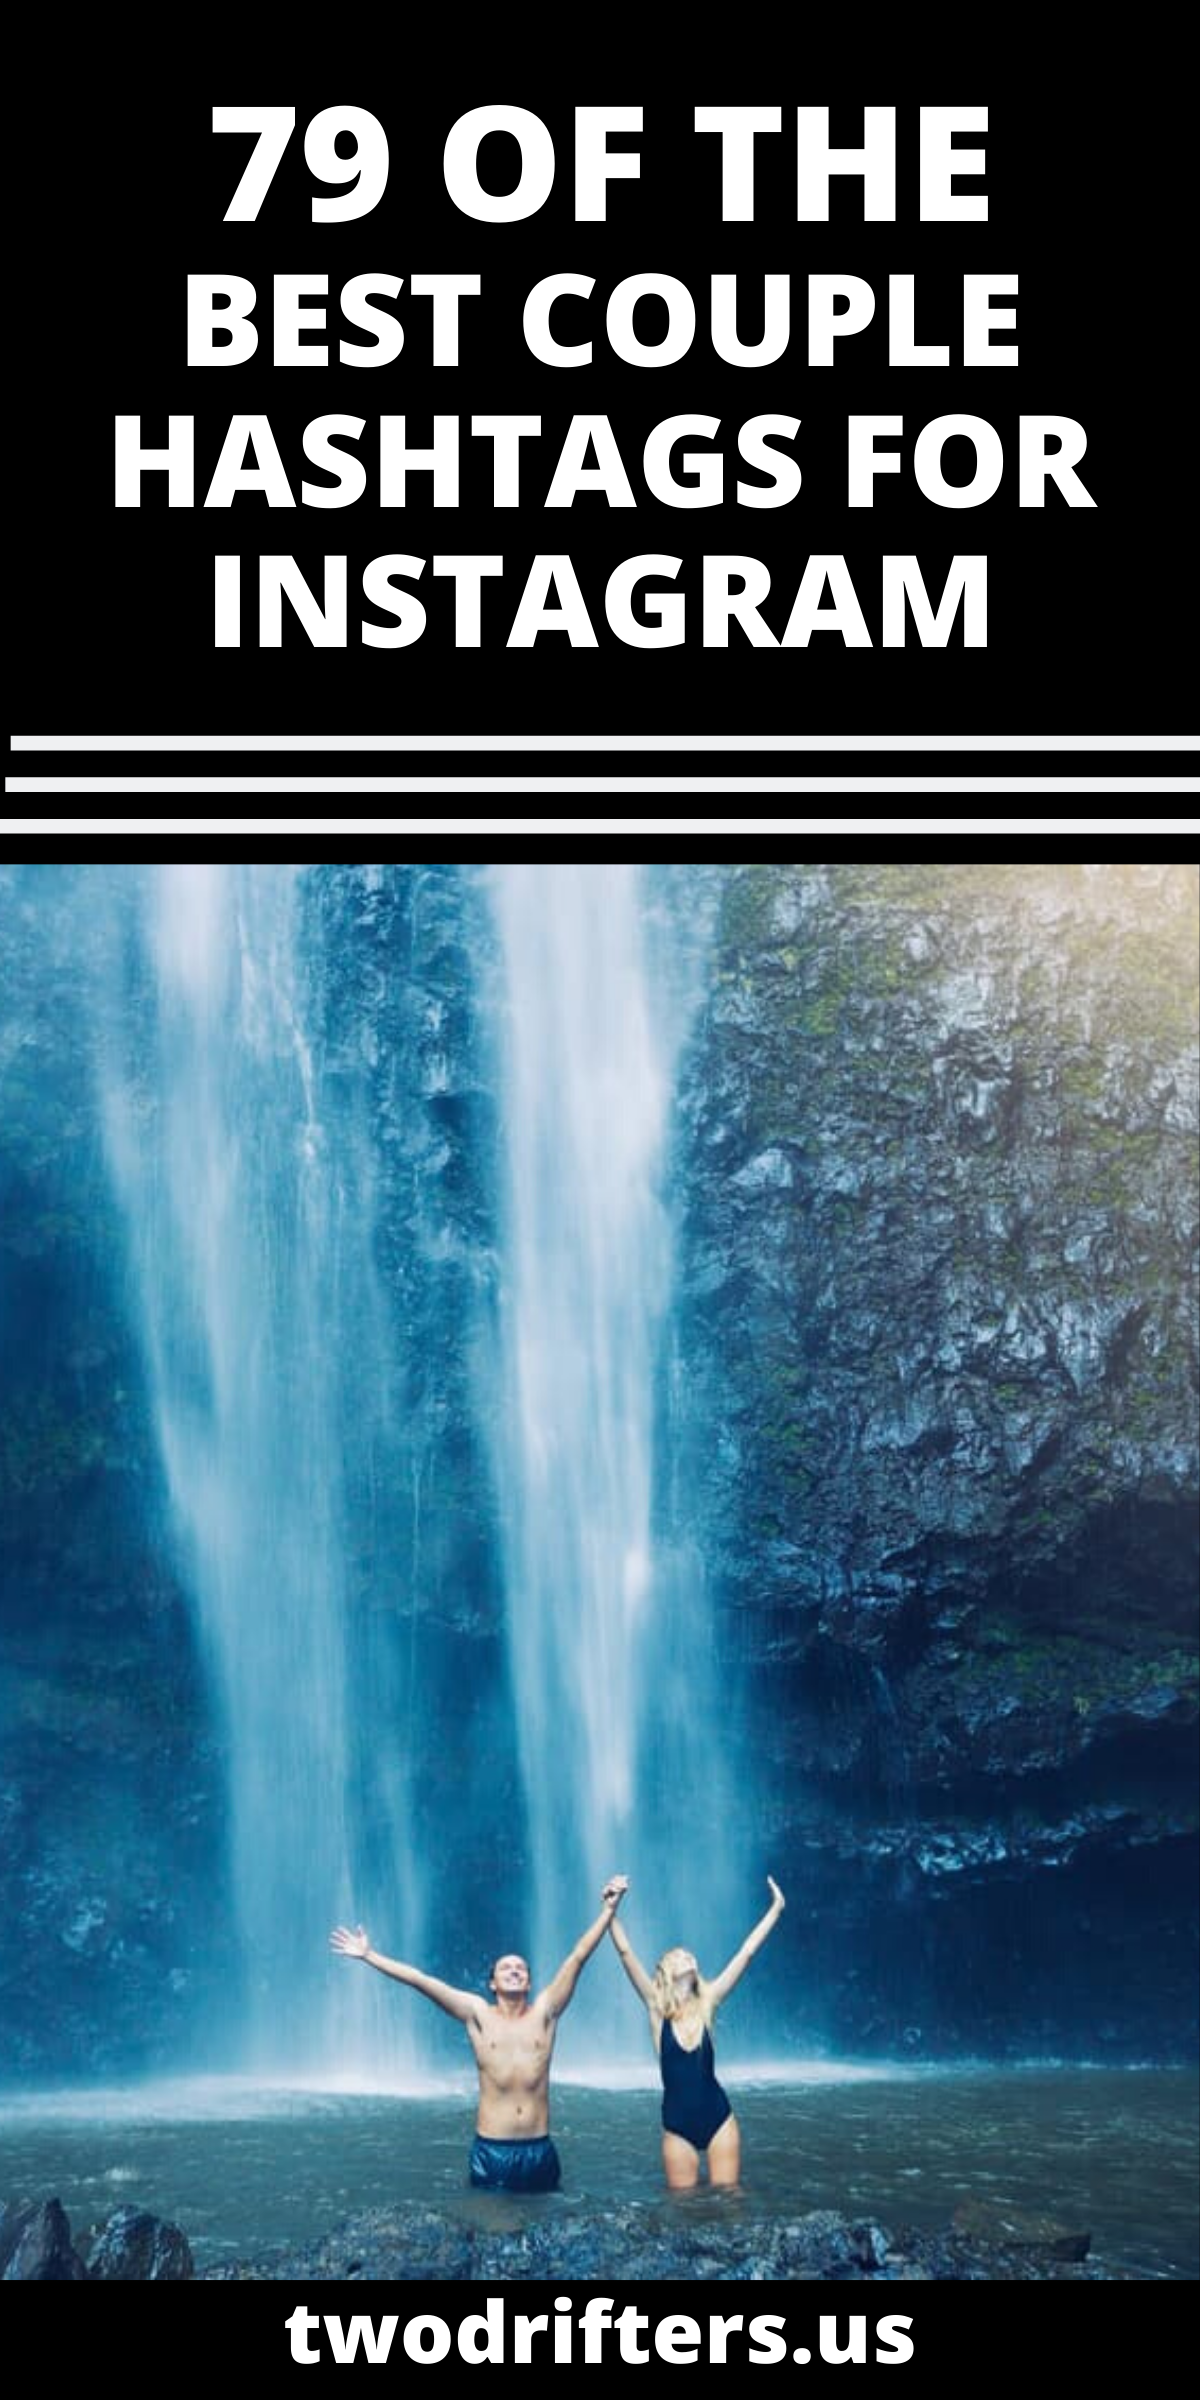 The Best Couple Hashtags For Instagram Just Copy Paste Best Instagram Hashtags Romantic Travel Travel Couple